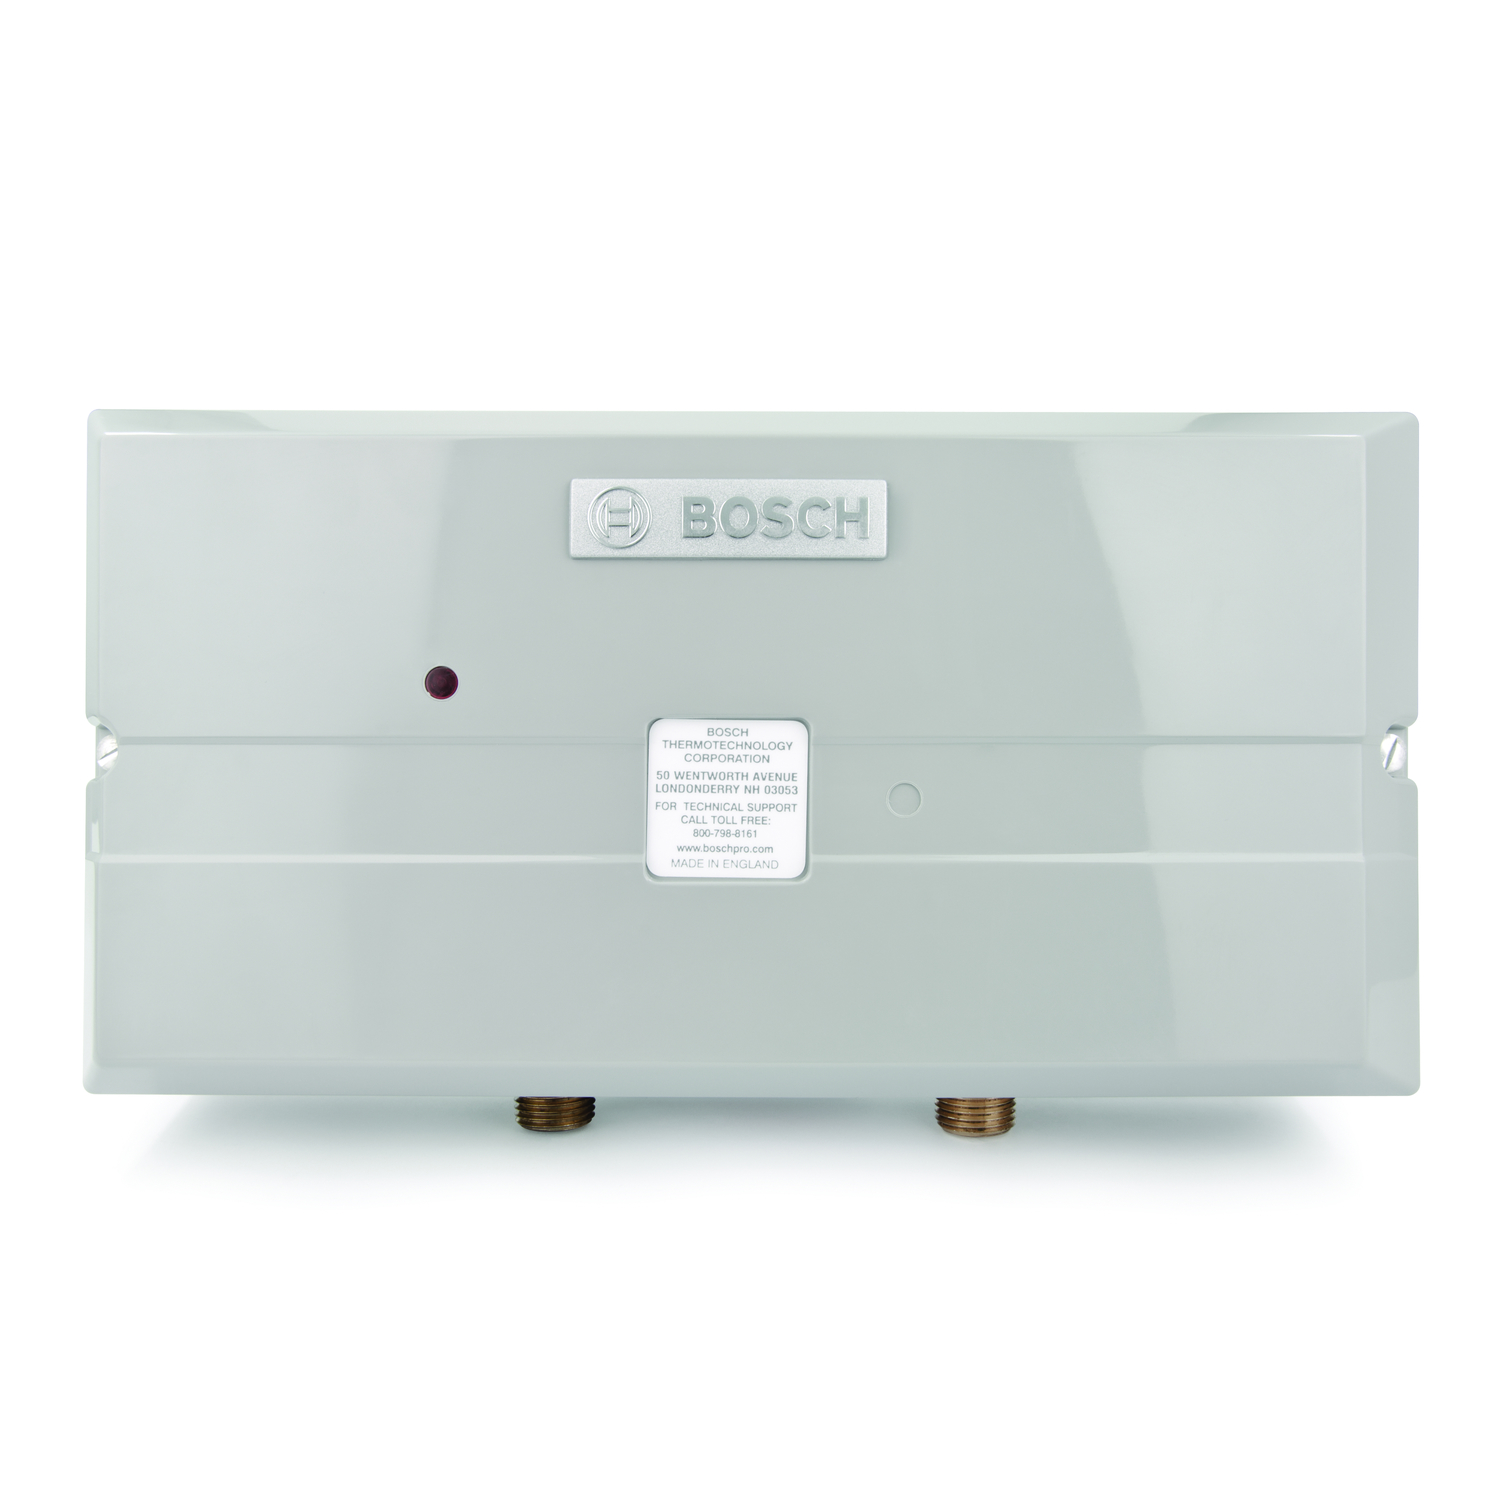 Bosch  Tronic 3000  Electric  Tankless Water Heater  6 in. H x 3 in. L x 12 in. W